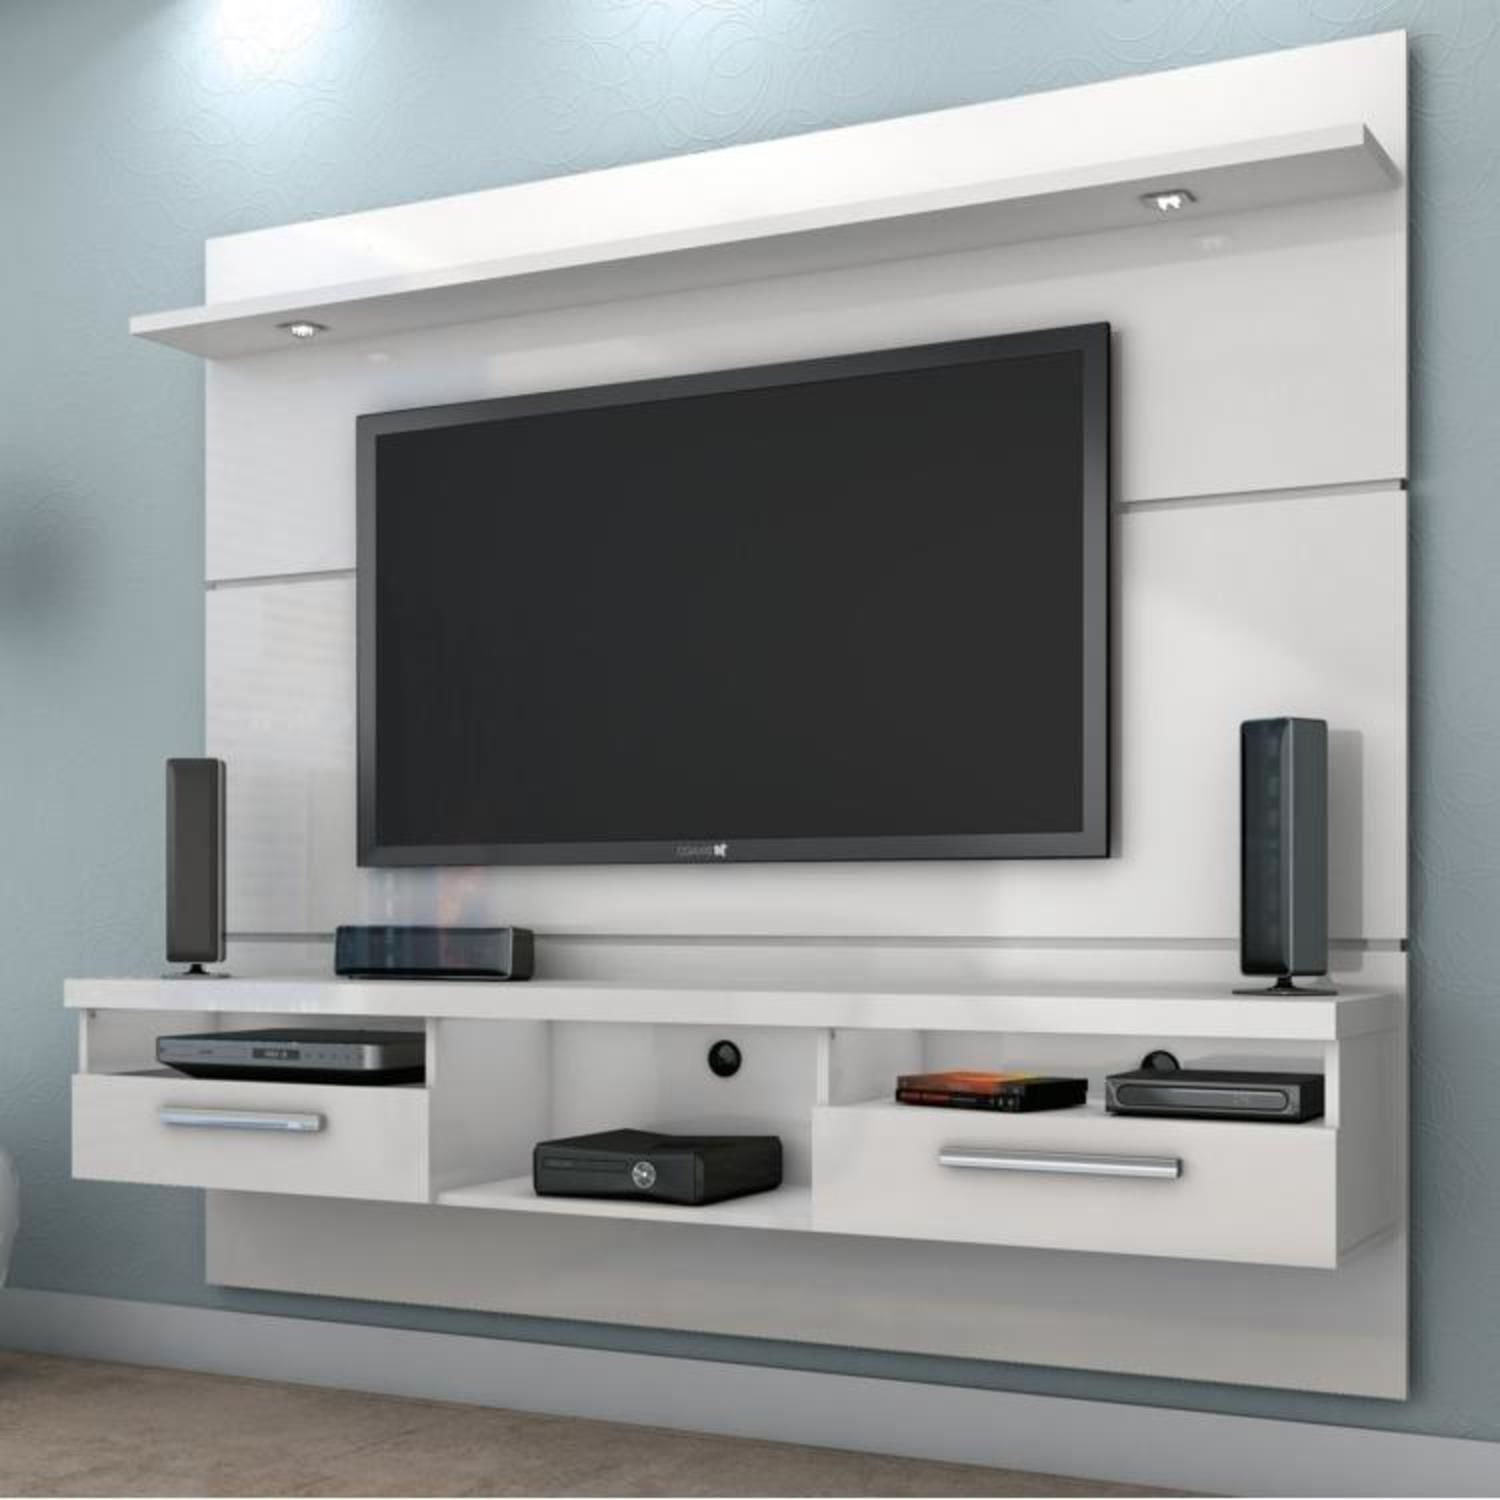 Estante para tv e home theater evidence valdem veis branco for Modelos de muebles para tv modernos